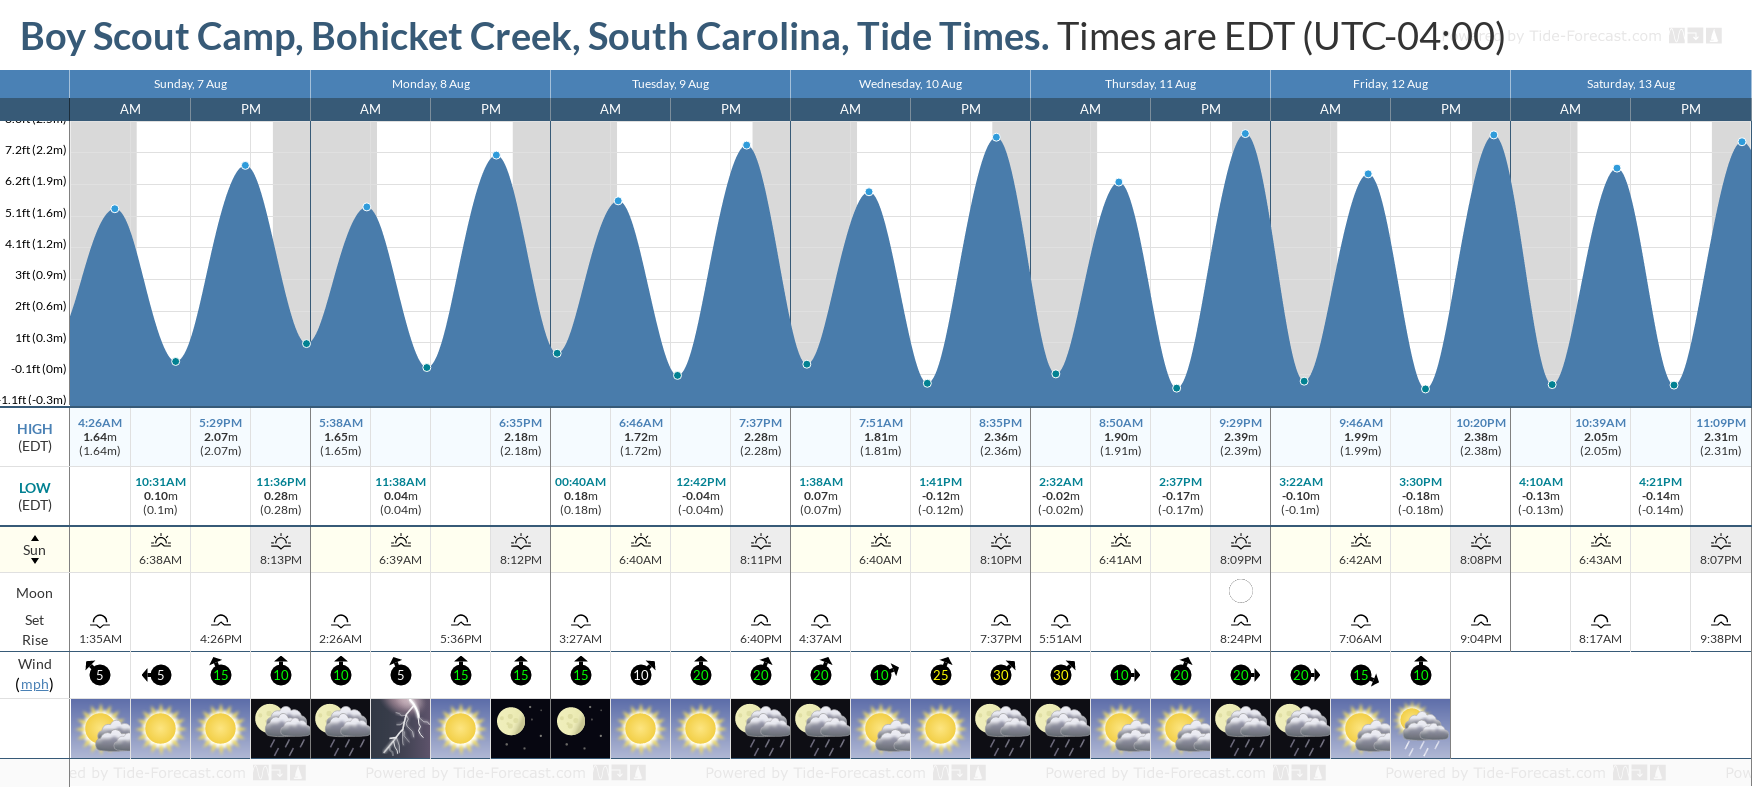 Boy Scout Camp, Bohicket Creek, South Carolina Tide Chart including high and low tide tide times for the next 7 days